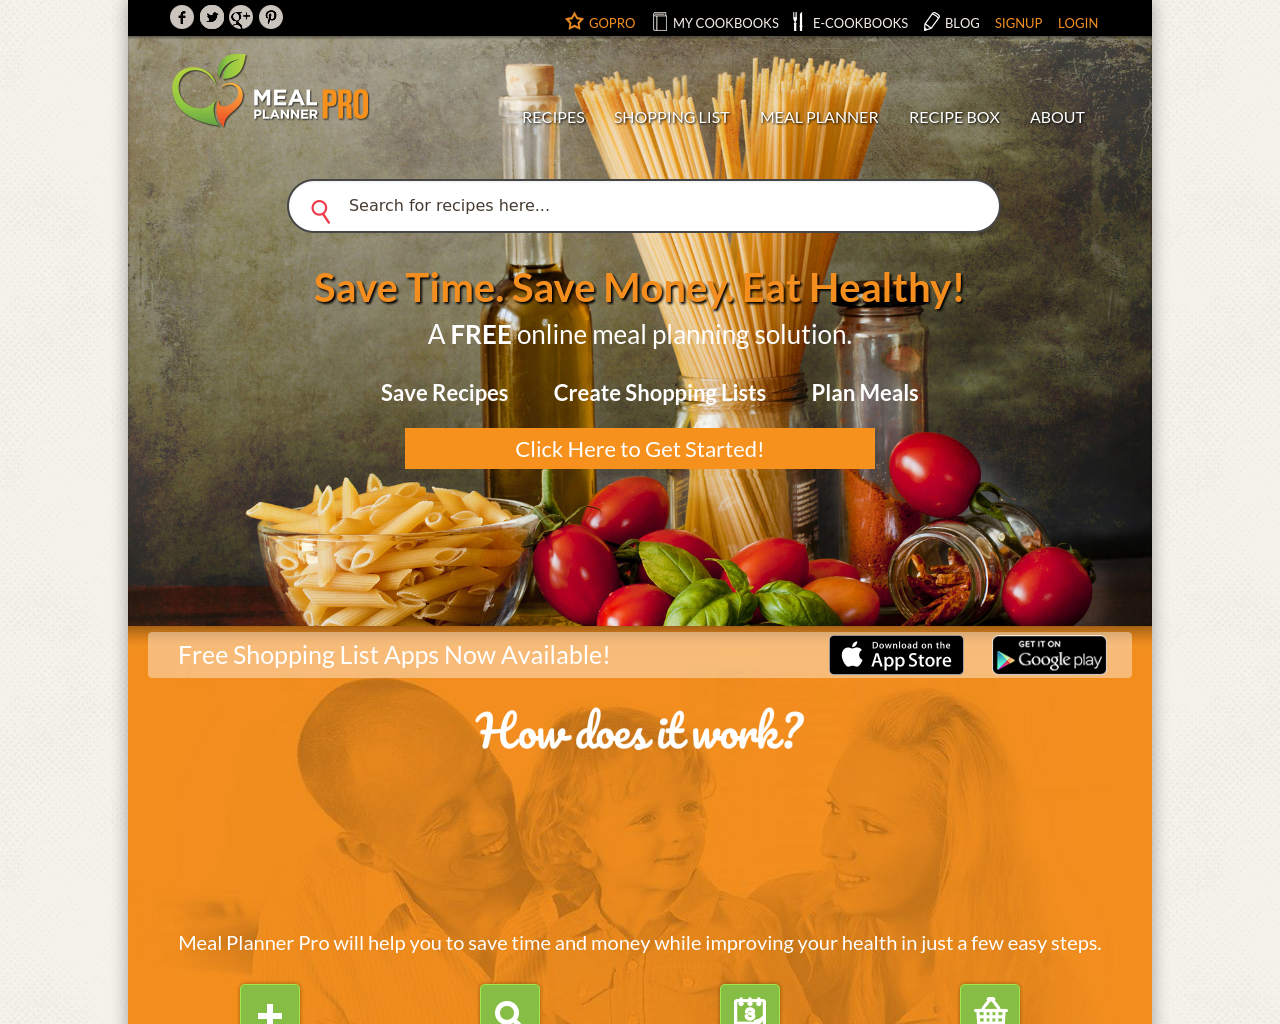 Meal-Planner-Pro-Advertising-Reviews-Pricing